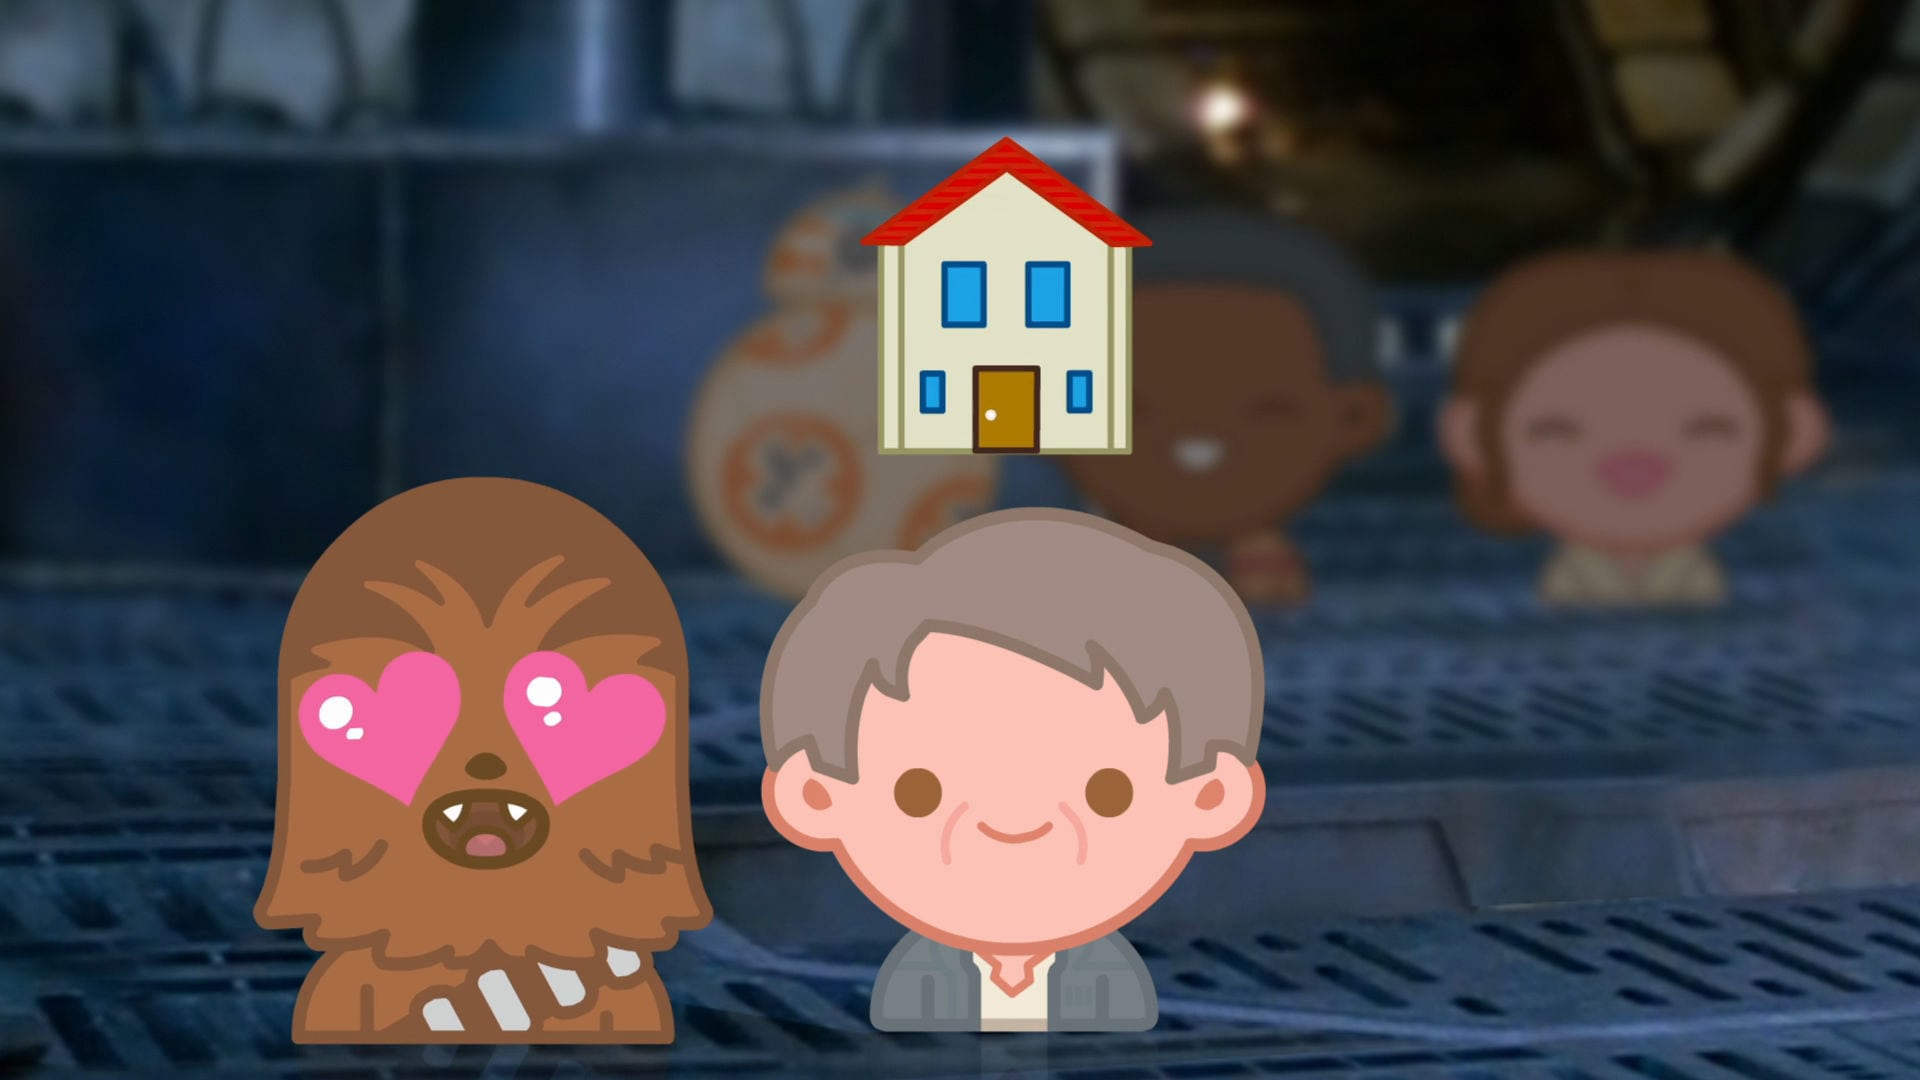 Star Wars: The Force Awakens - As Told by Emoji